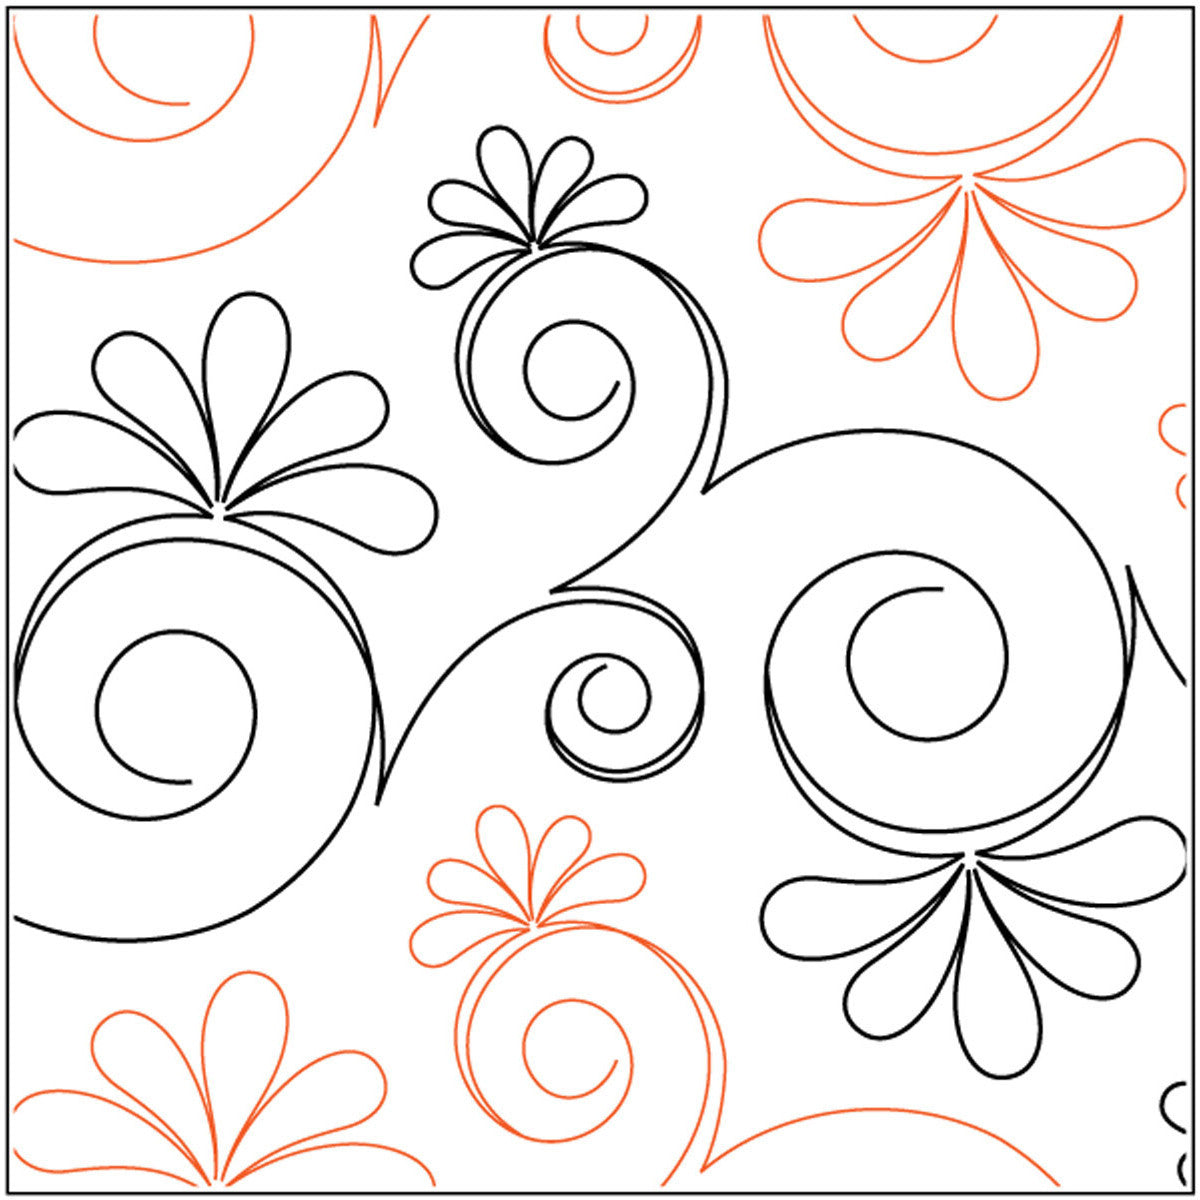 Quilt Stencils By Patricia Ritter and Leisha Farnsworth Chantilly 12in - Quilting-Warehouse